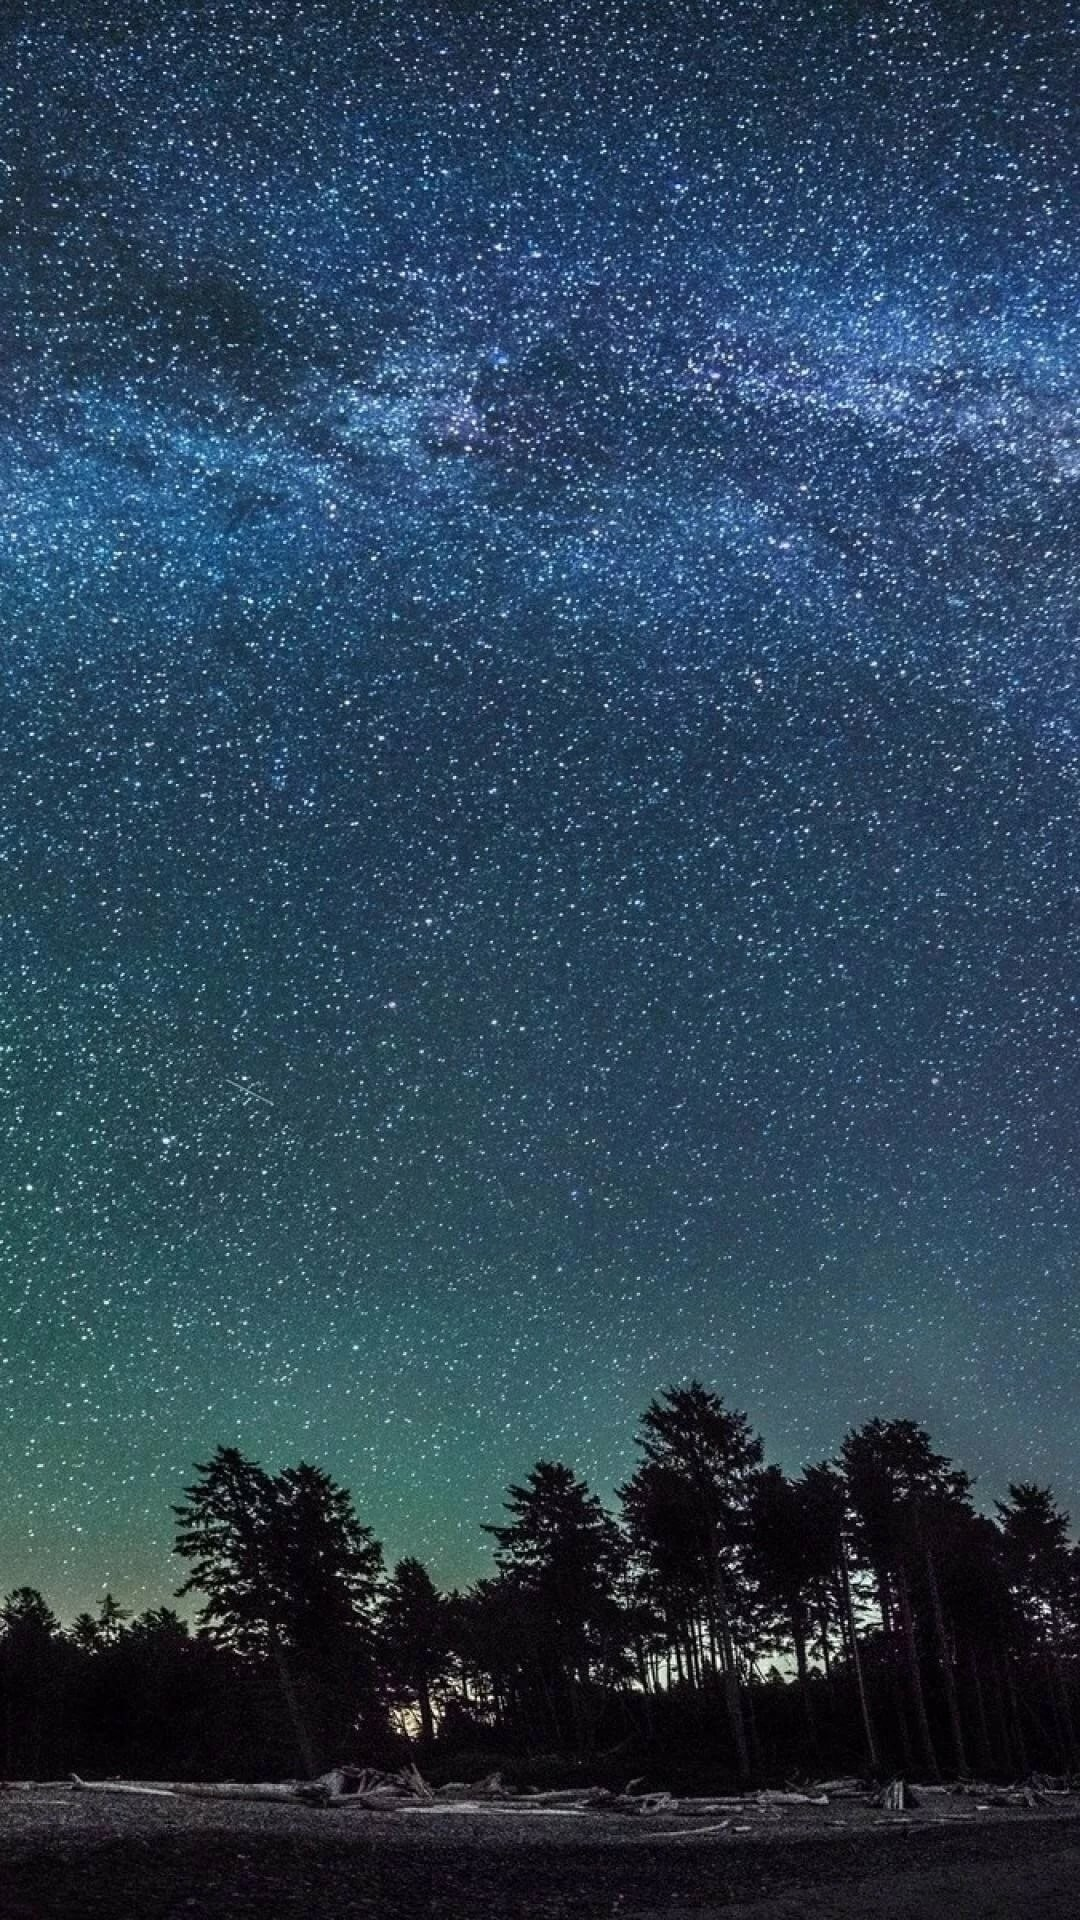 Starry Sky wallpaper iphone